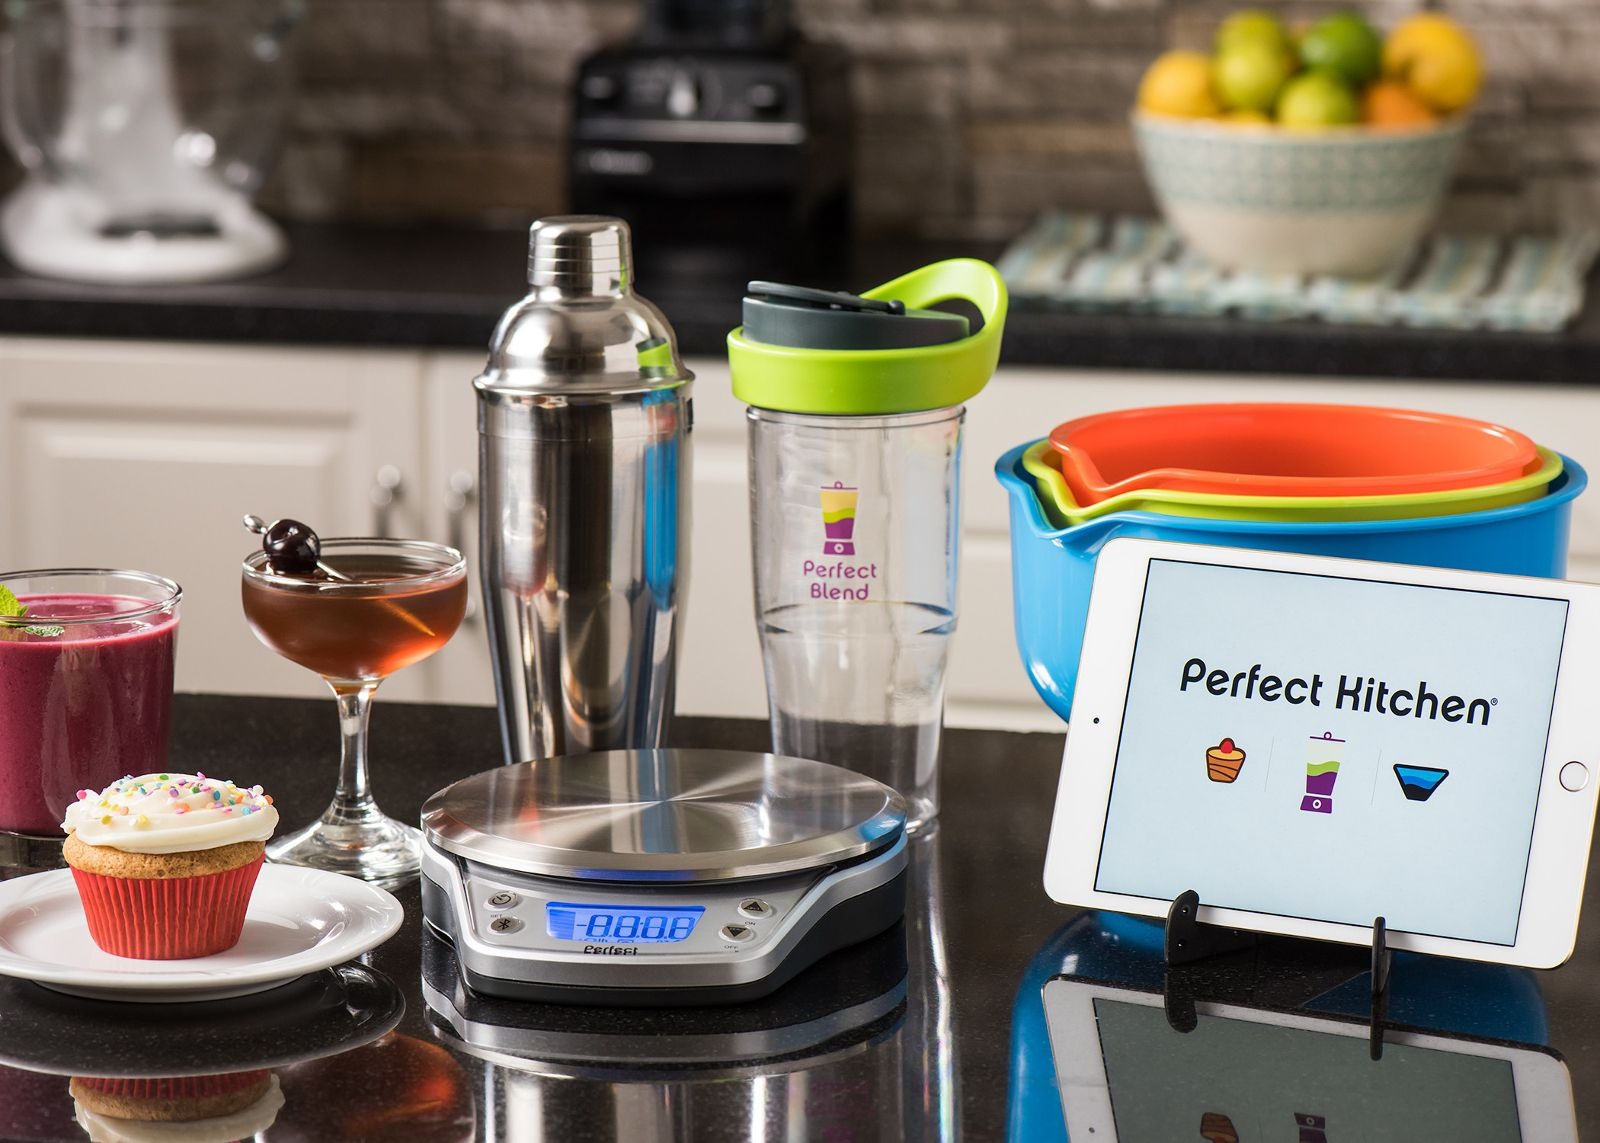 This 130 kitchen scale is an expensive way to learn to for Perfect kitchen pro smart scale and app system